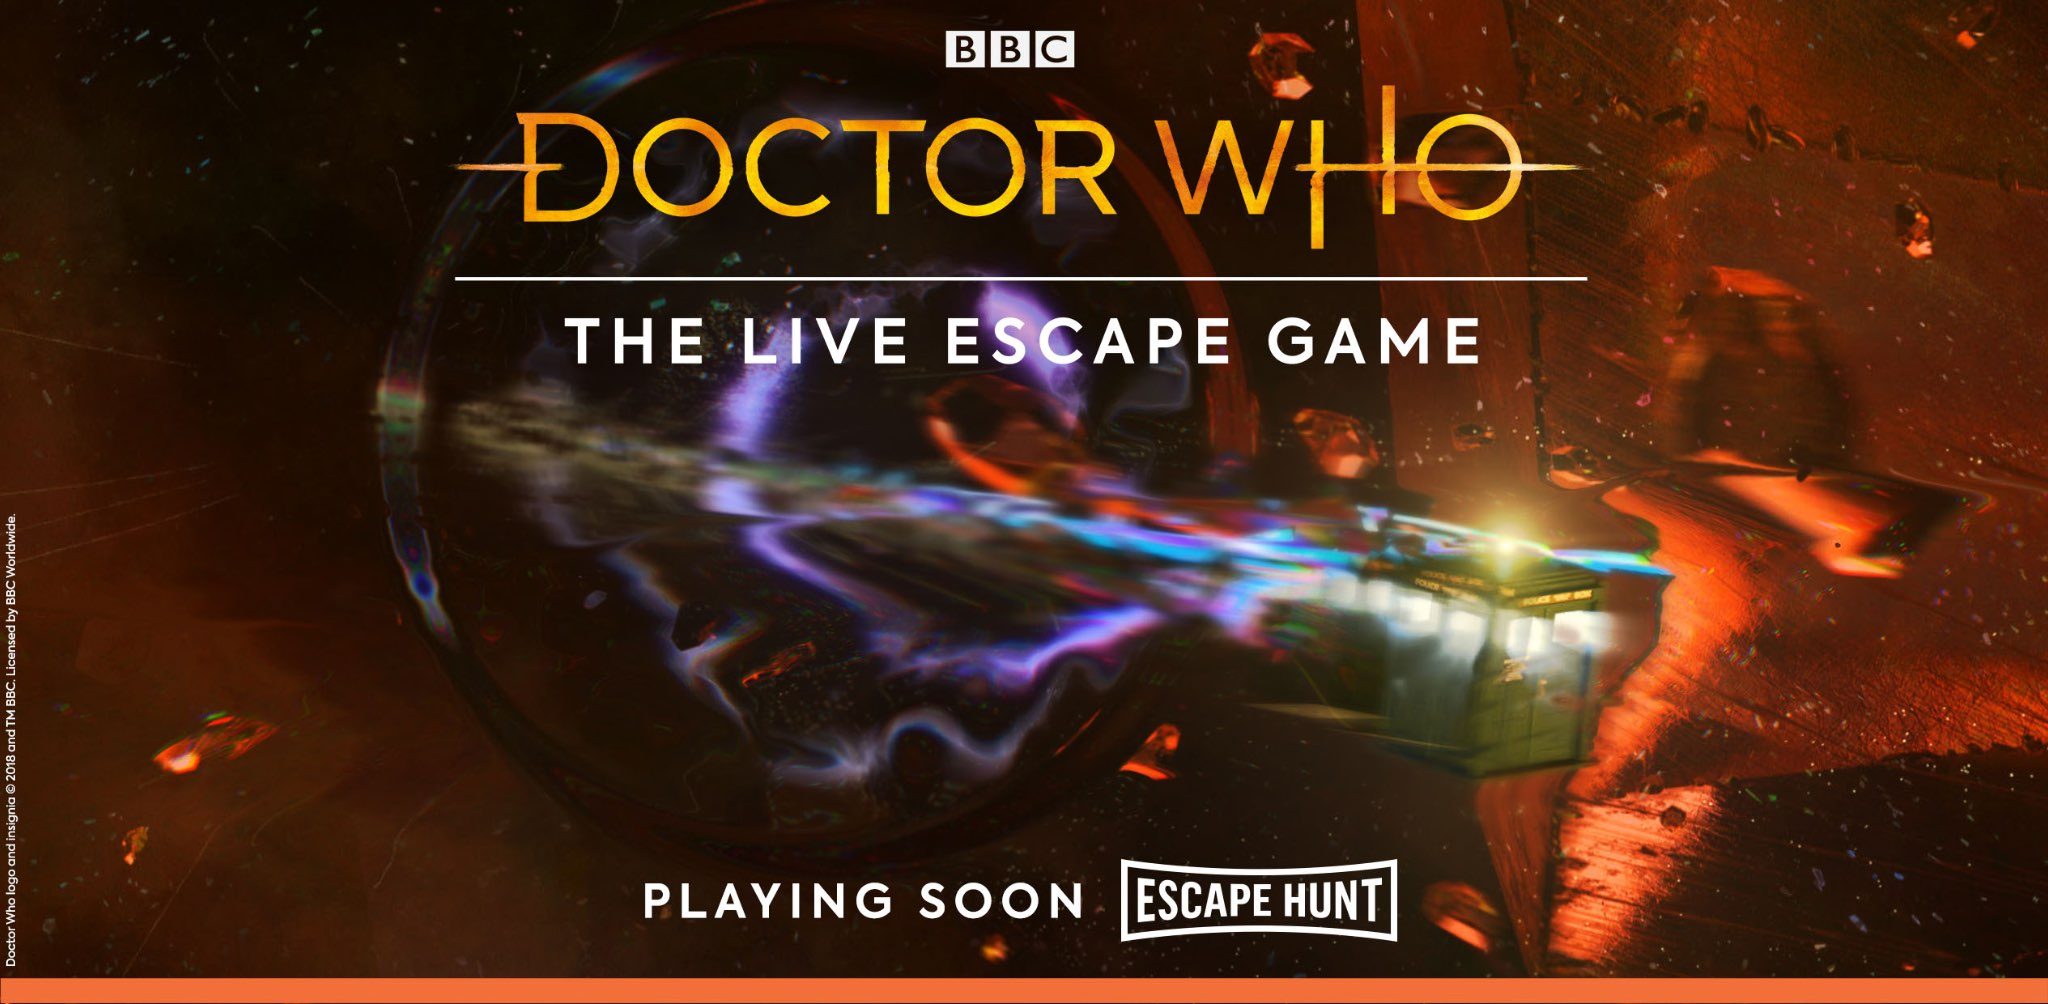 Doctor Who the live escape game. Eho-doctorwho-2x